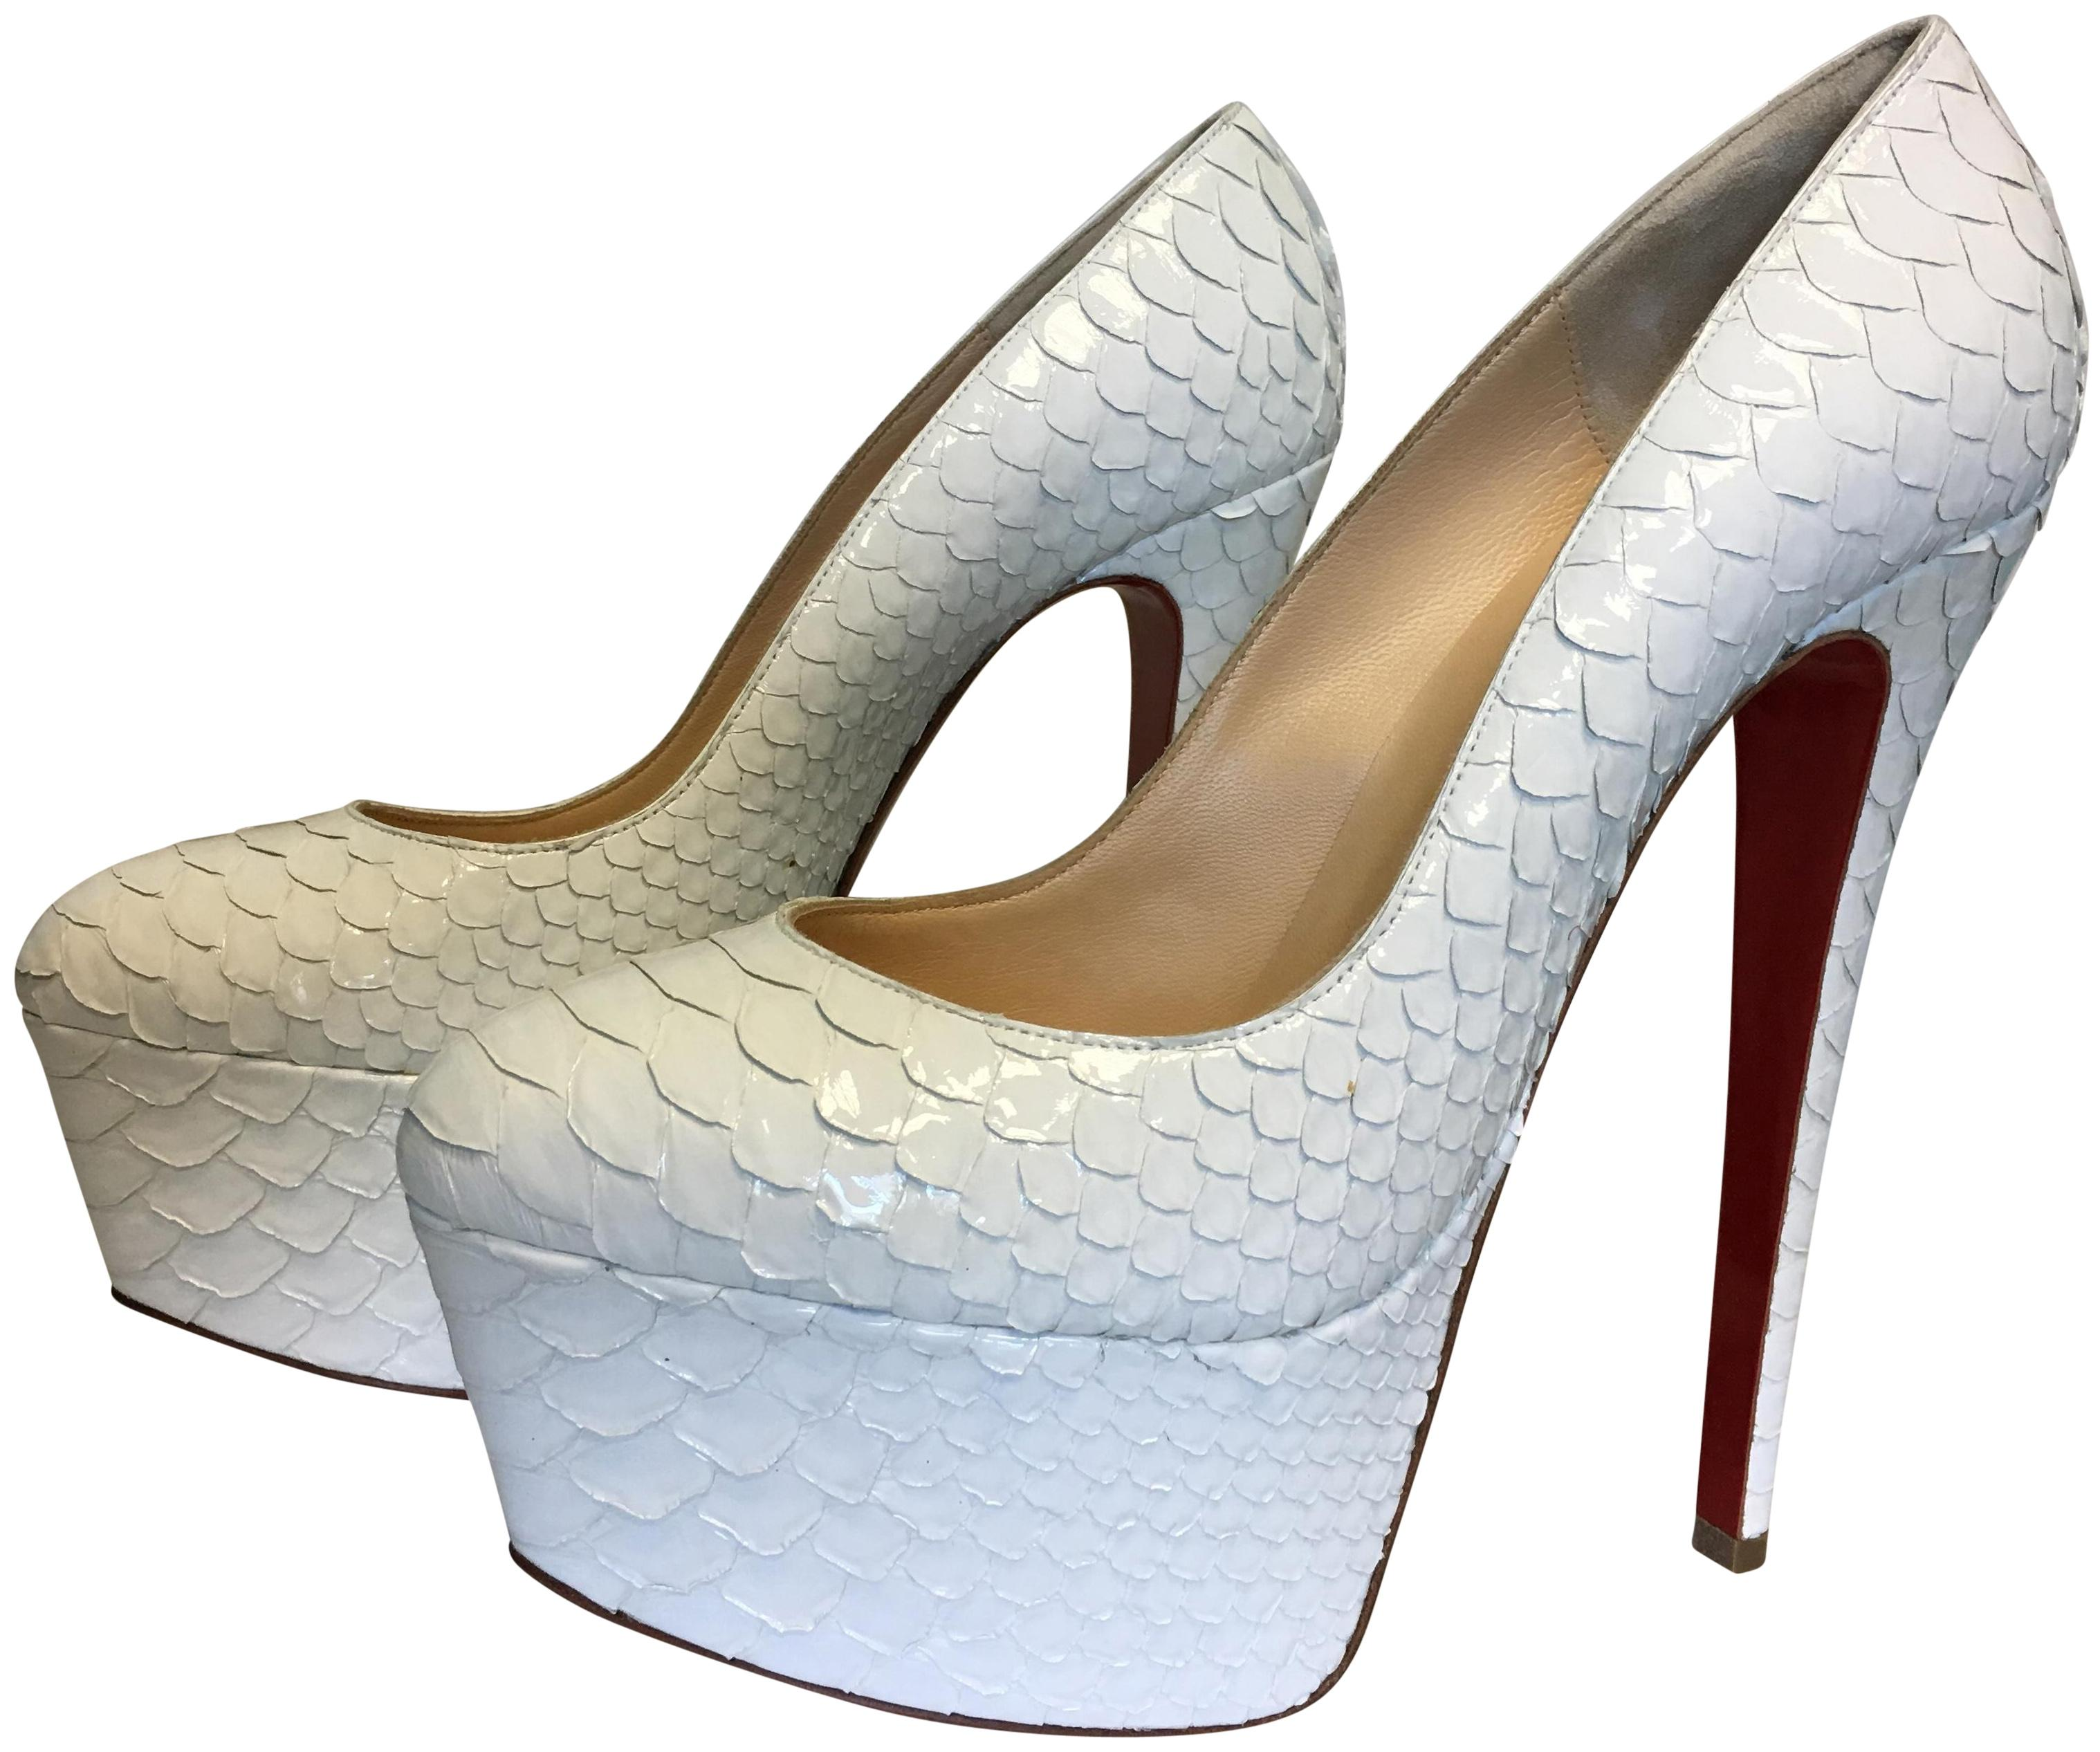 cd1fb4525386b5 christian-louboutin-white-rare-and -limited-edition-victoria-160mm-platform-python-crystal-heels-pump-23586814-0-1.jpg